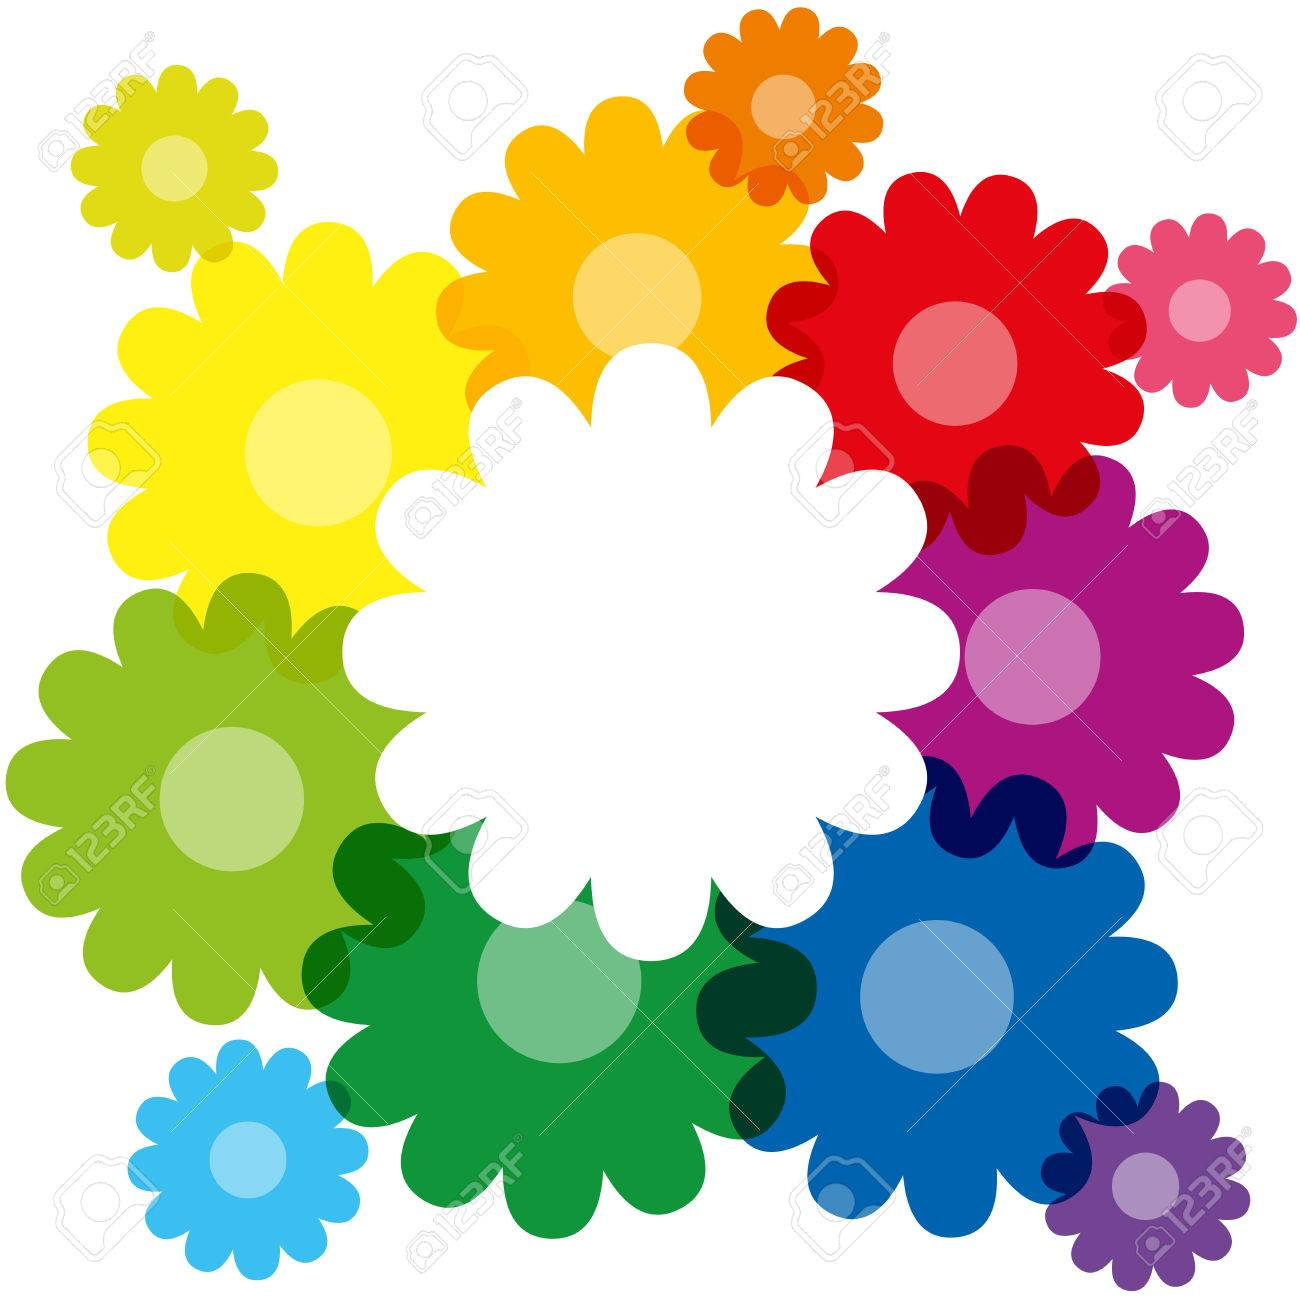 Rainbow Colored Flowers Forming A Colorful Bouquet And Frame ...